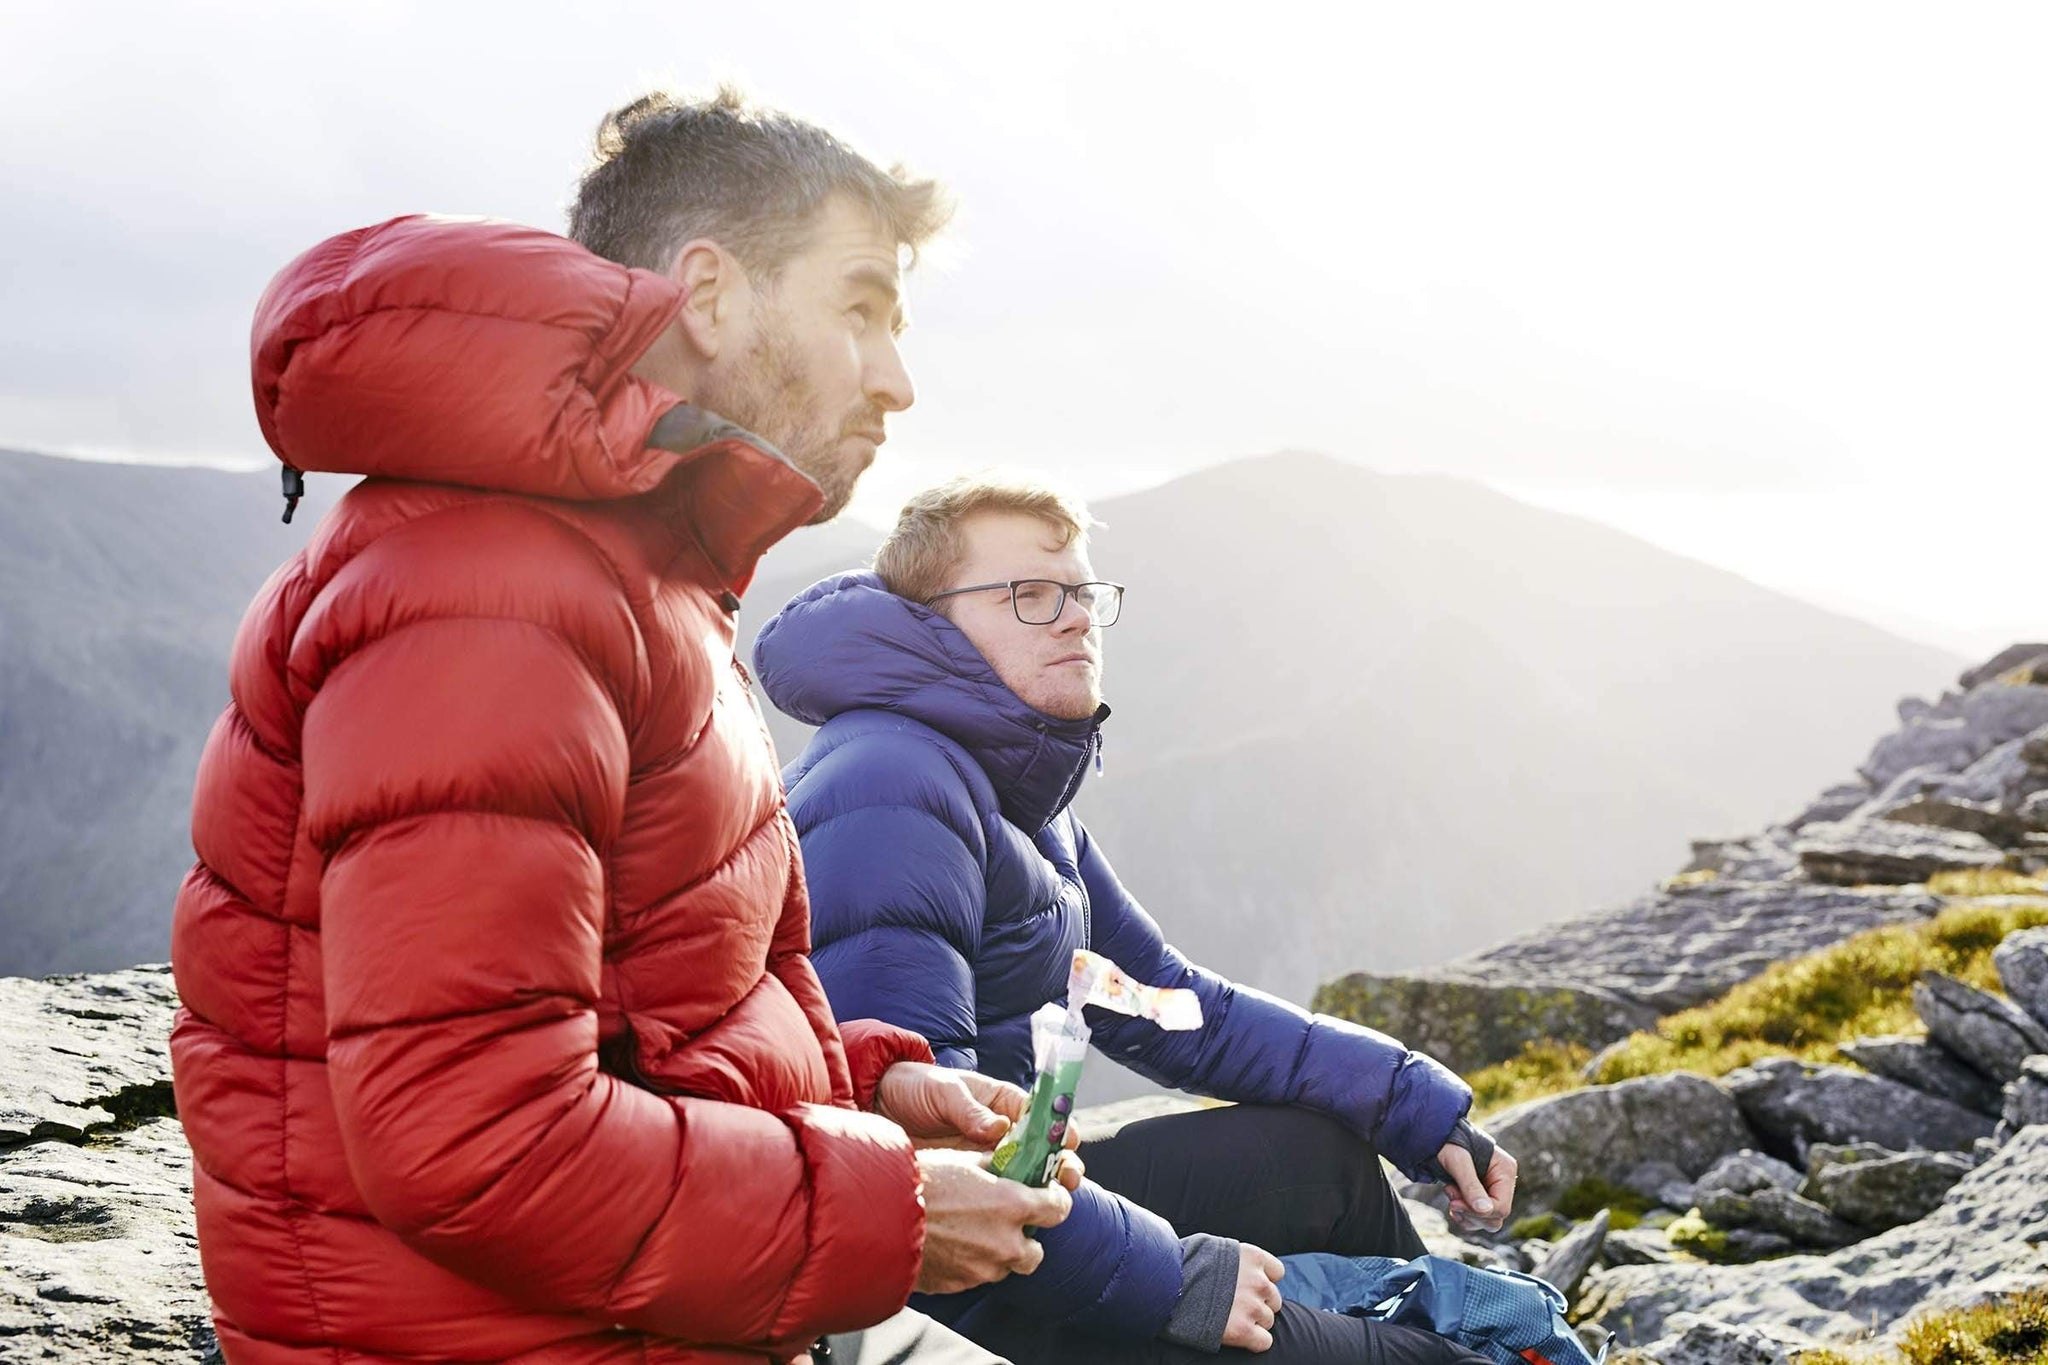 Two men sitting on top of a mountain in Snowdonia in the Fantom down jacket